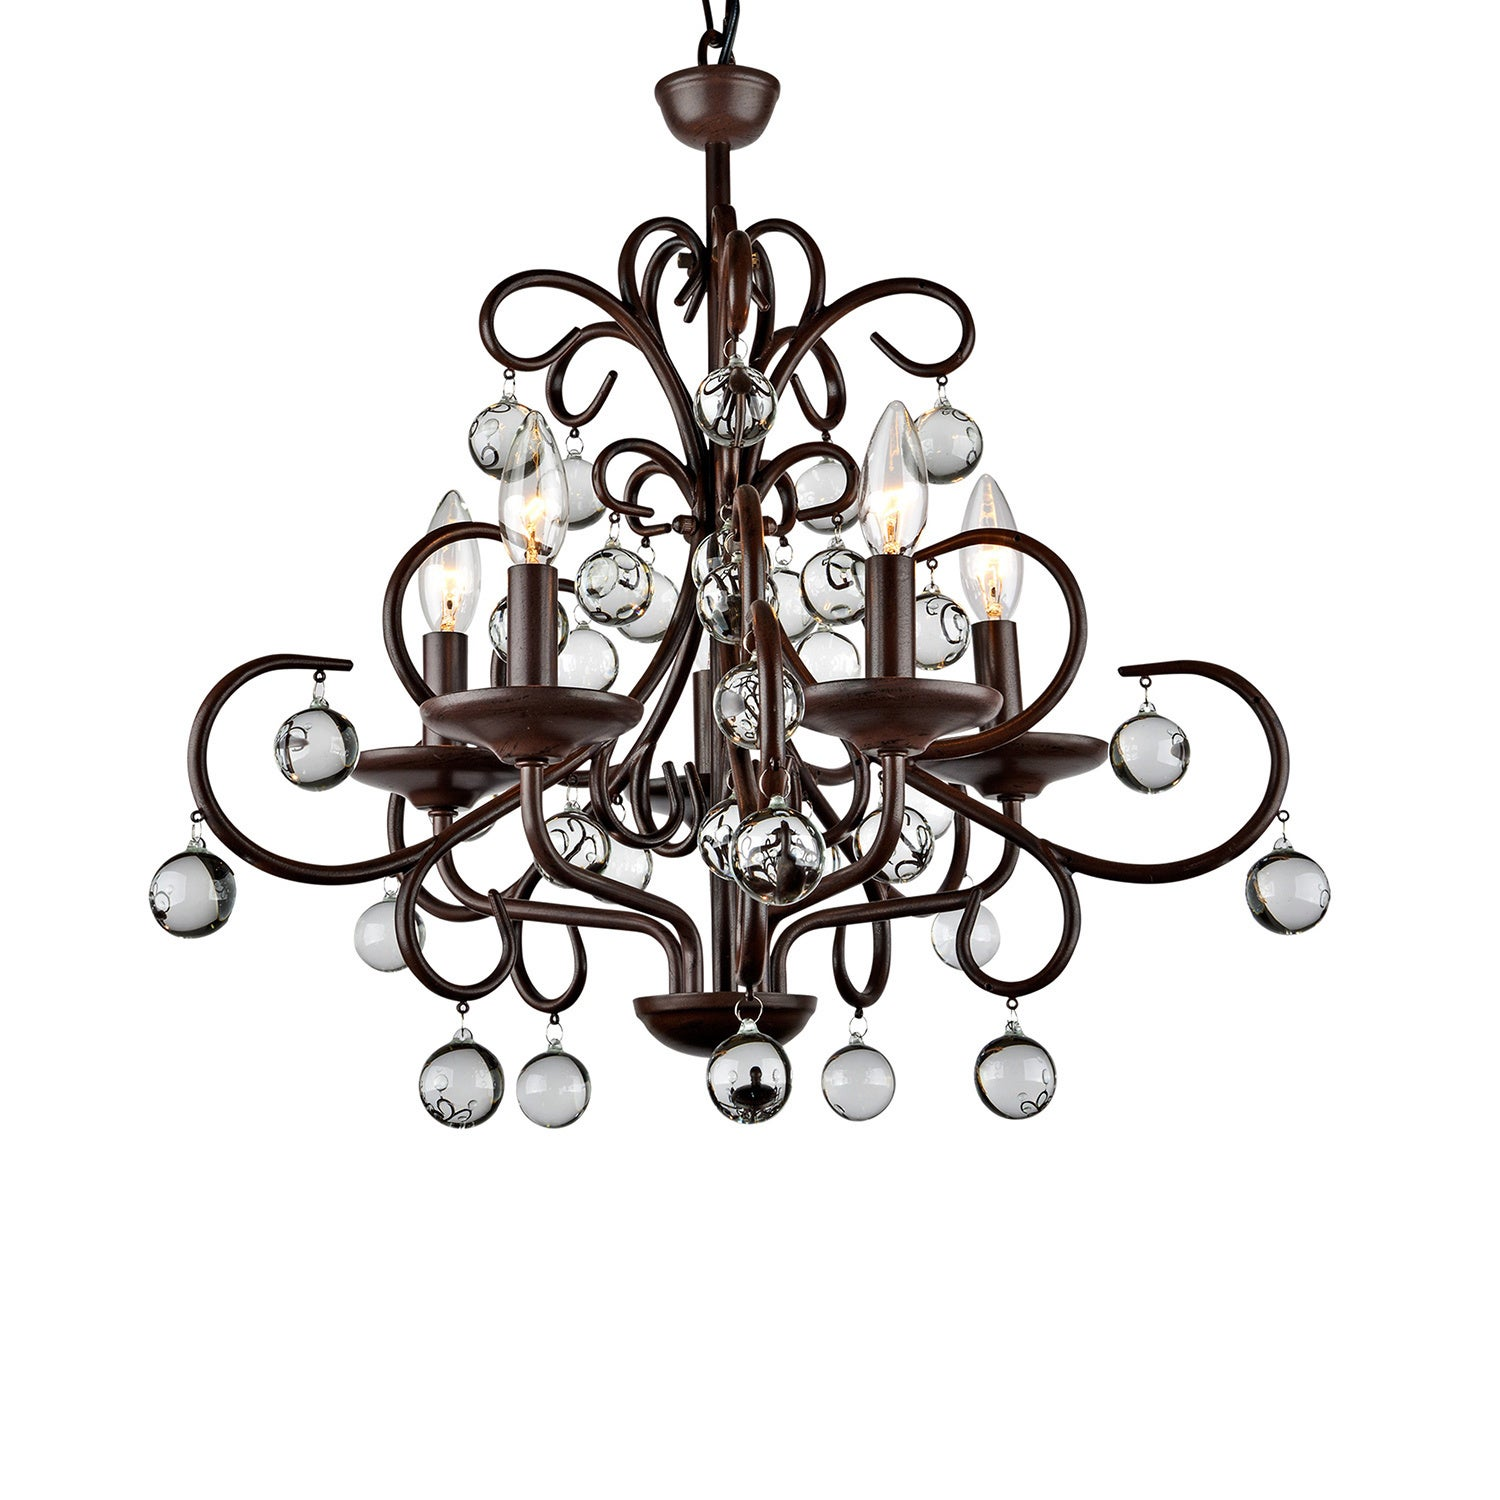 Wrought iron and crystal 5 light chandelier free shipping today wrought iron and crystal 5 light chandelier free shipping today overstock 11387594 arubaitofo Images